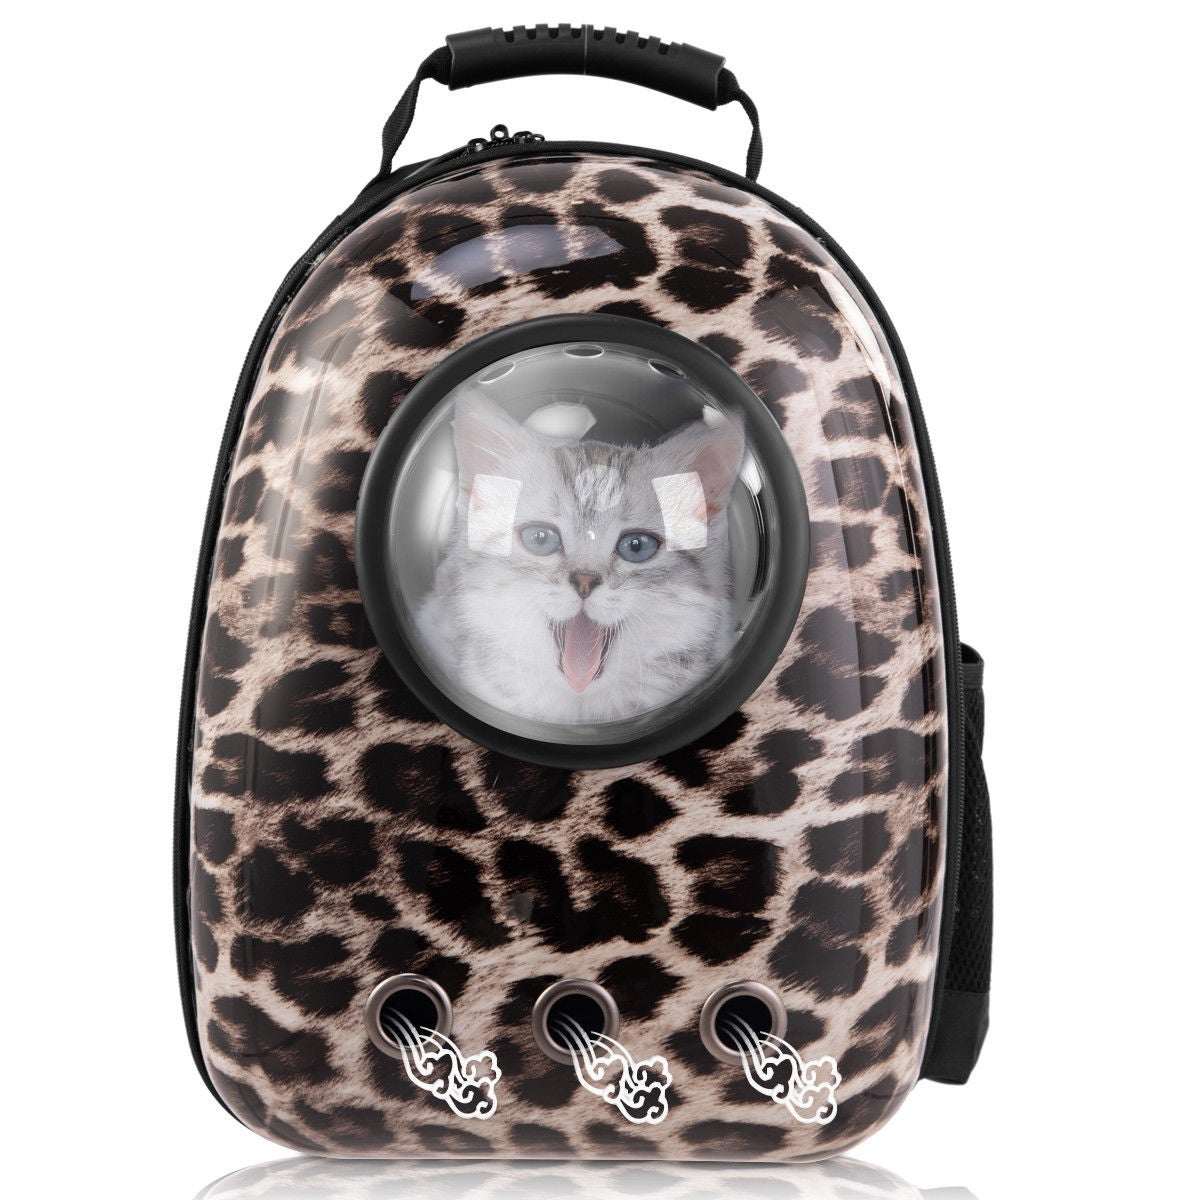 f36373ce7e0 Shop Costway Astronaut Pet Cat Dog Puppy Carrier Travel Bag Space Capsule  Backpack Breathable - On Sale - Free Shipping Today - Overstock - 18020355